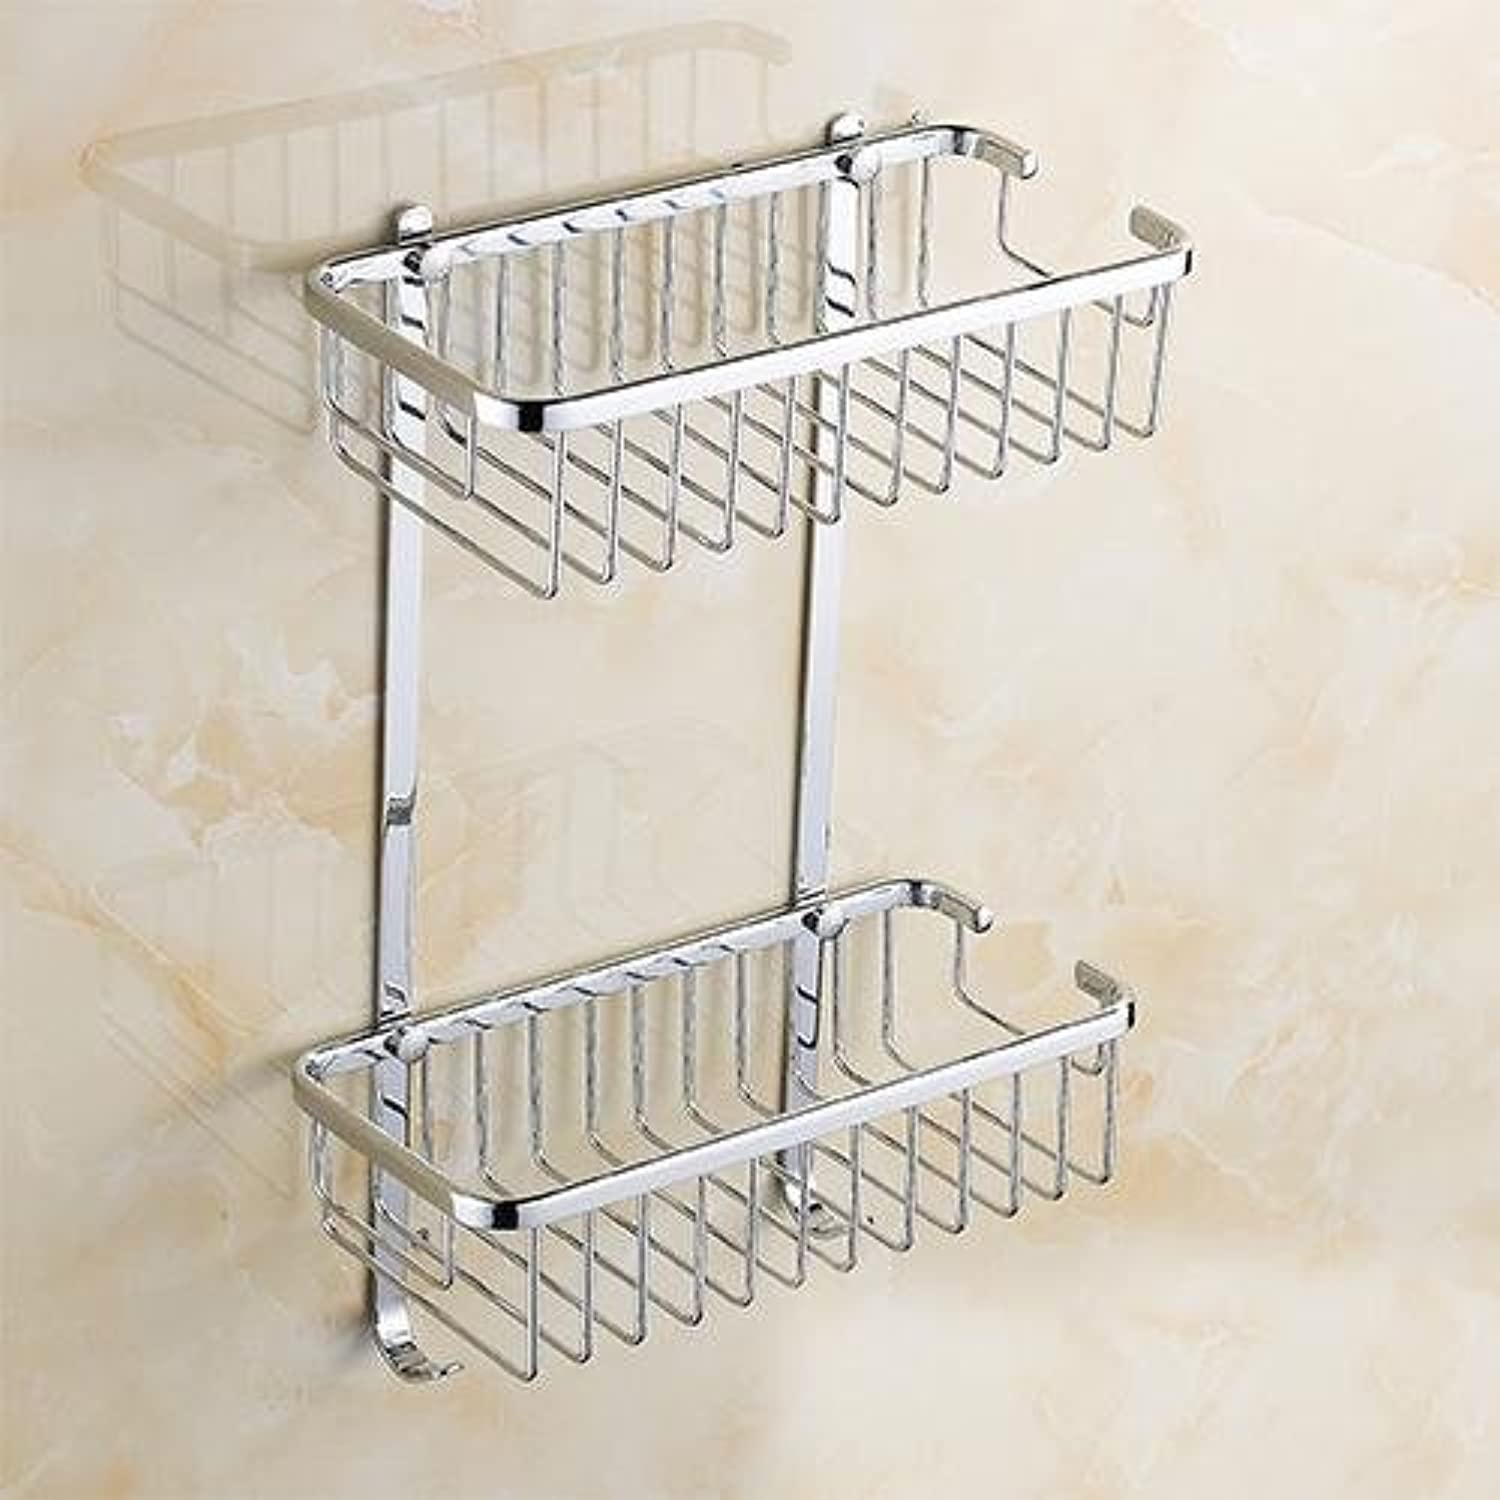 XAH@ Bathroom accessories copper plated double layer glass baskets bathroom rack